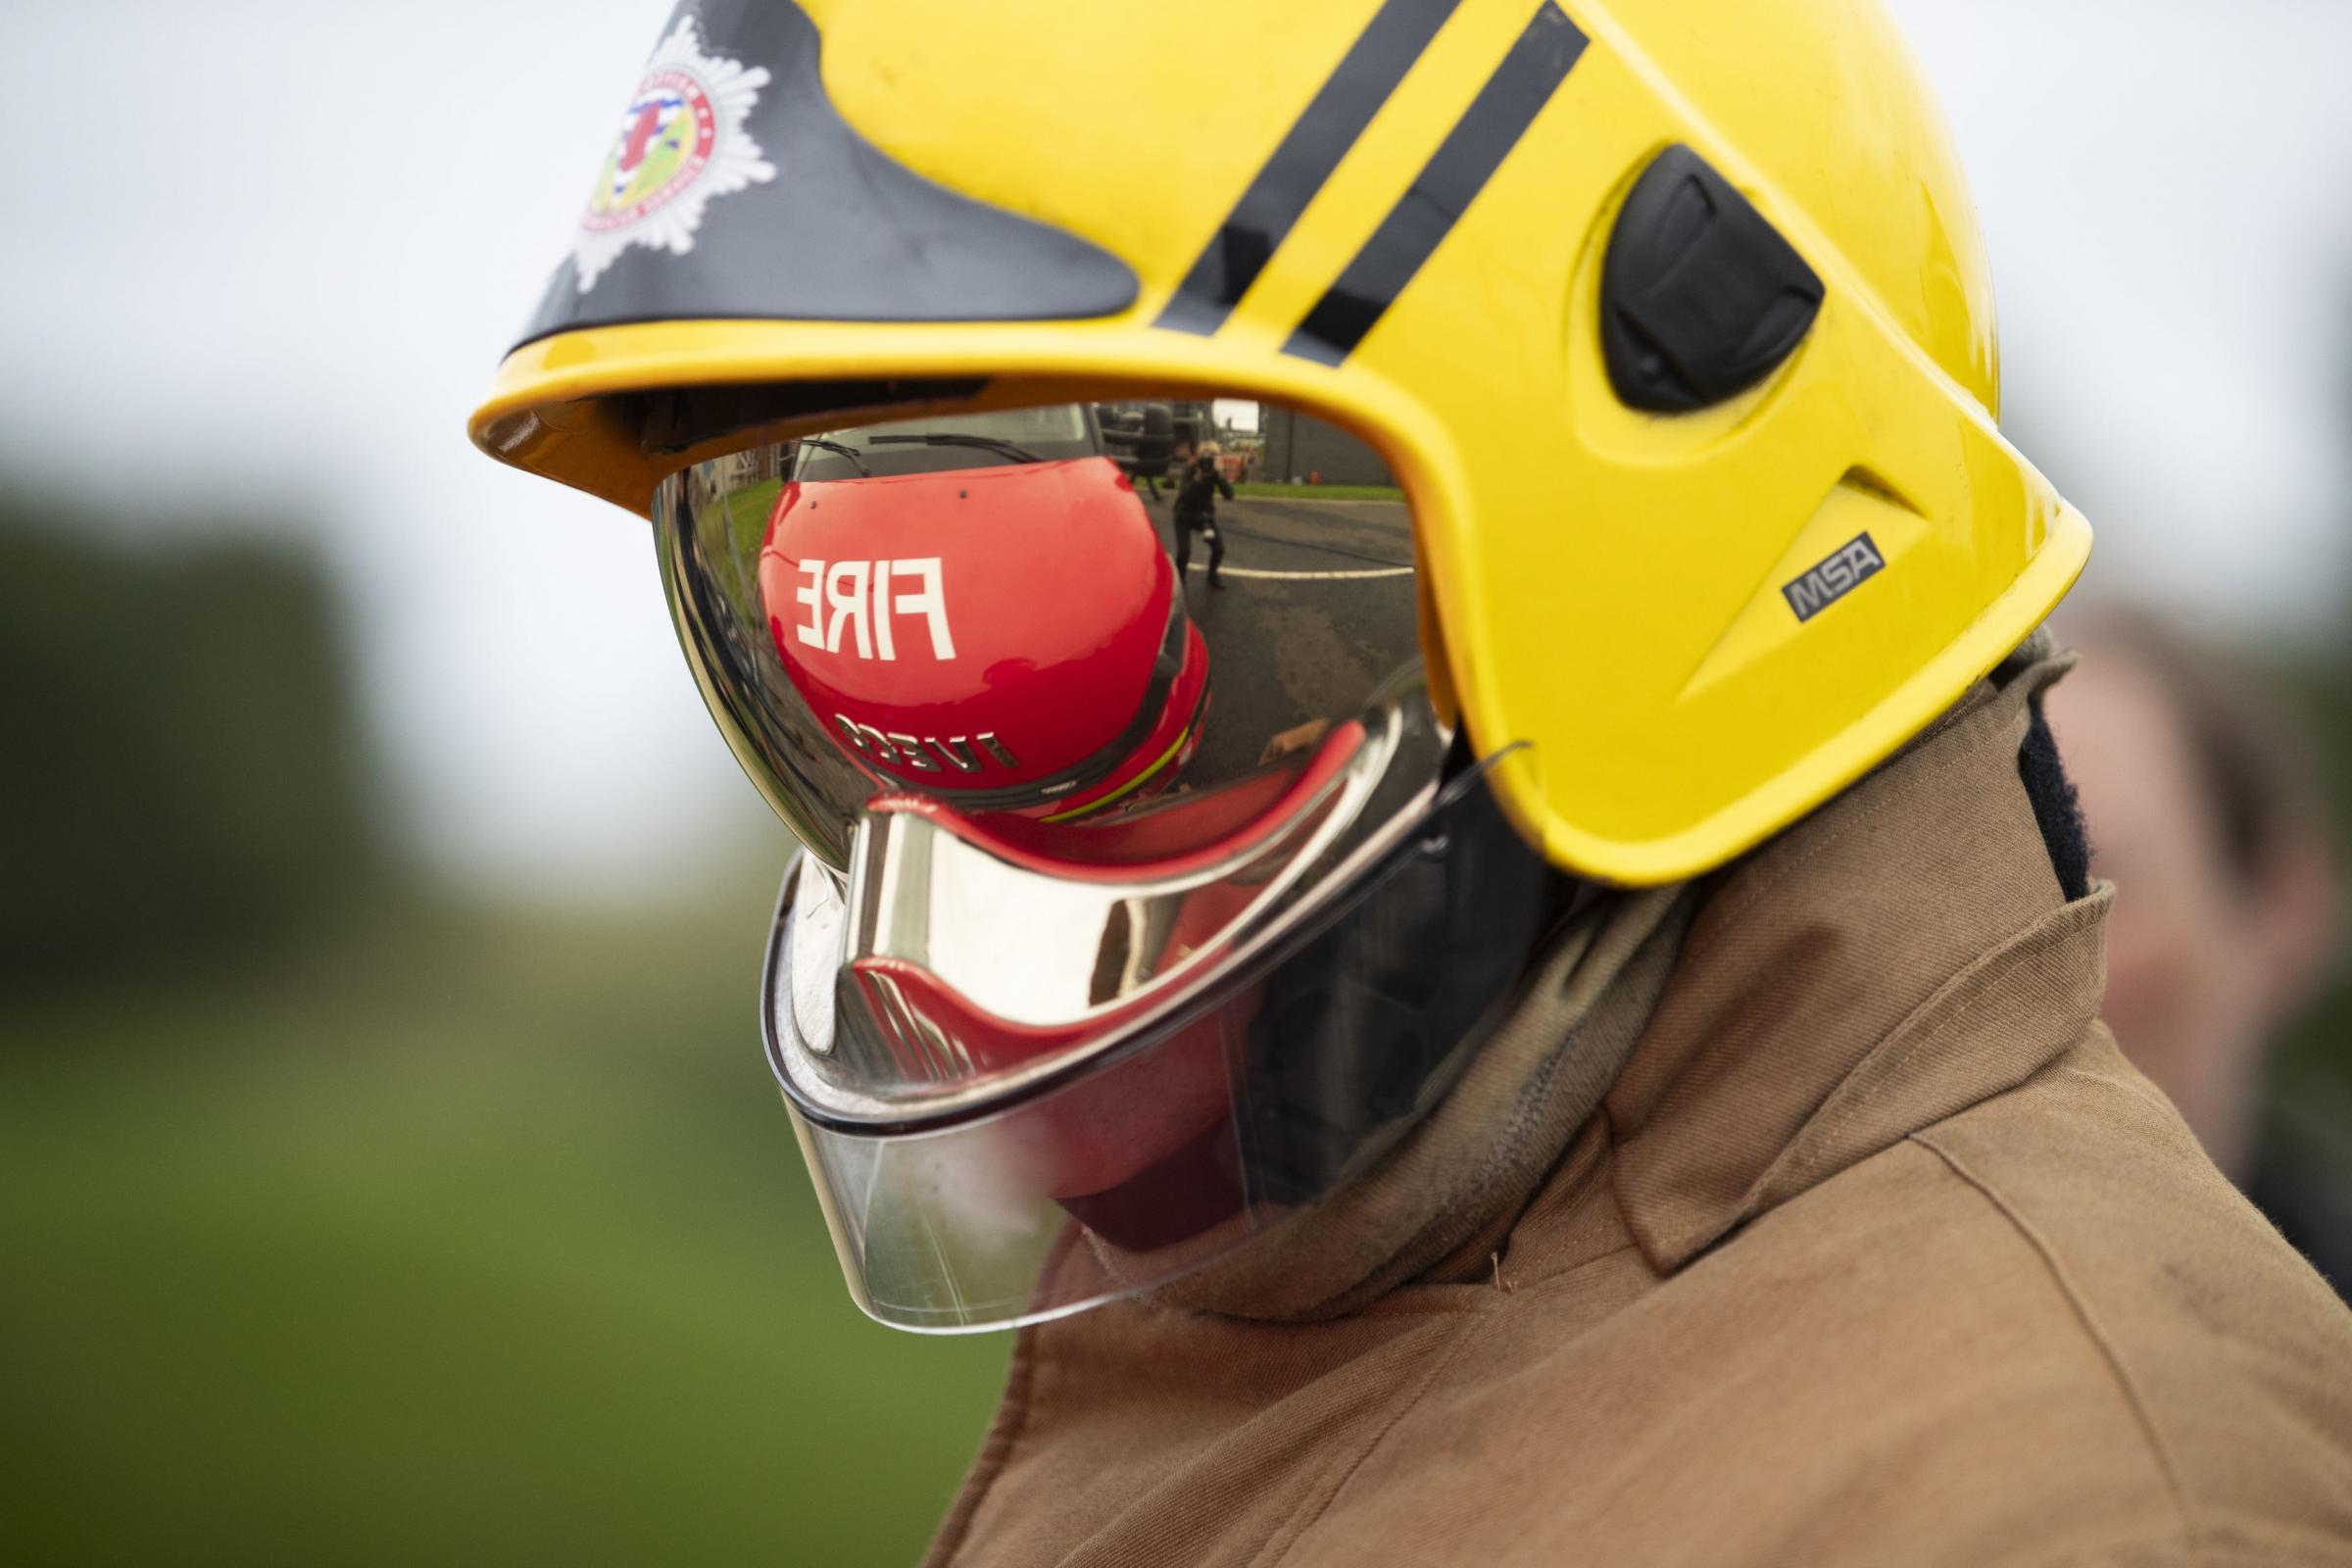 A firefighter at work